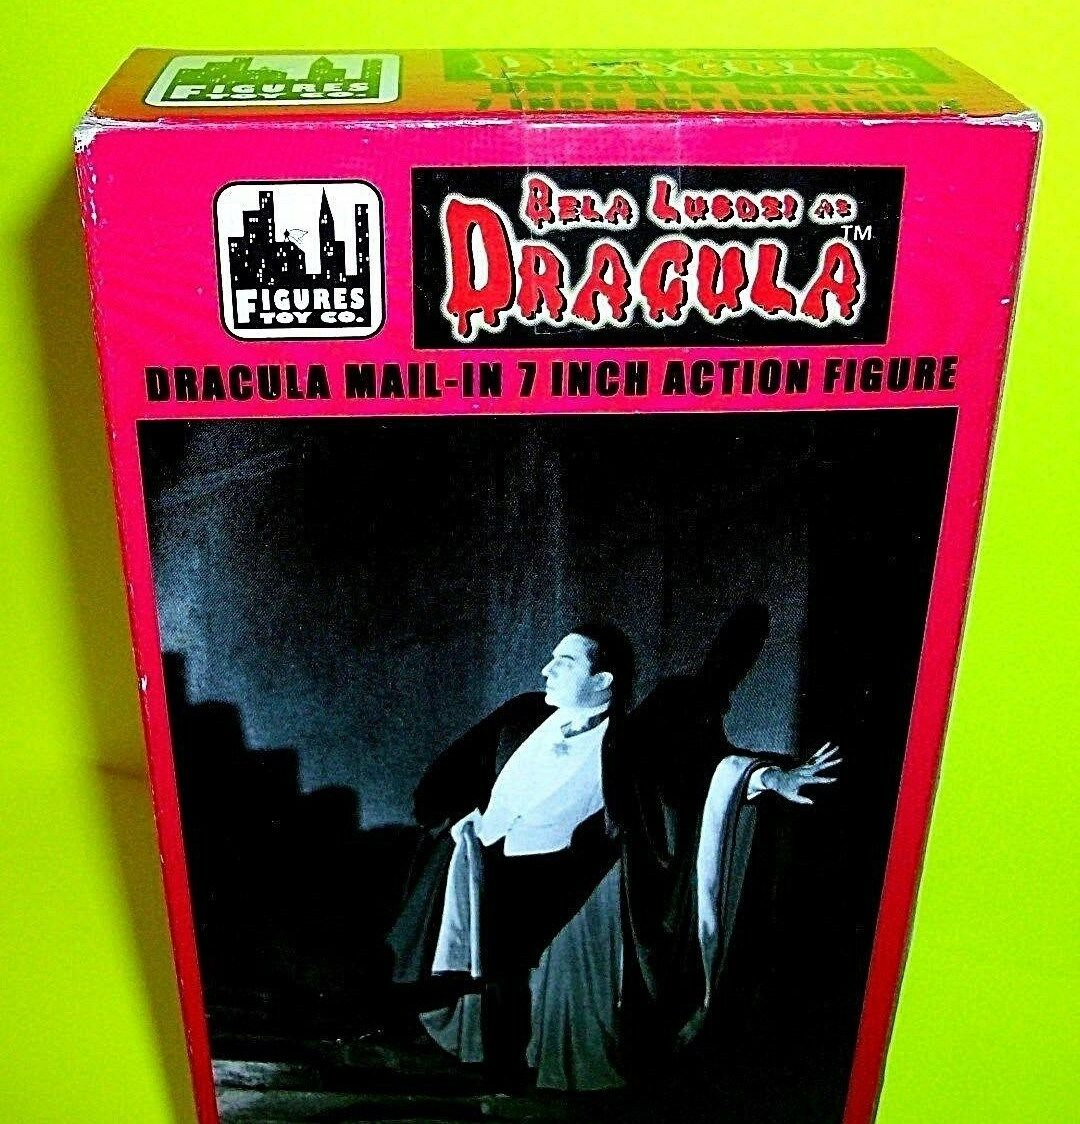 DRACULA Bela Lugosi 7  Action Figure Super Super Super RARE bluee Variant Mail-In Away BEAUTY 468f0d